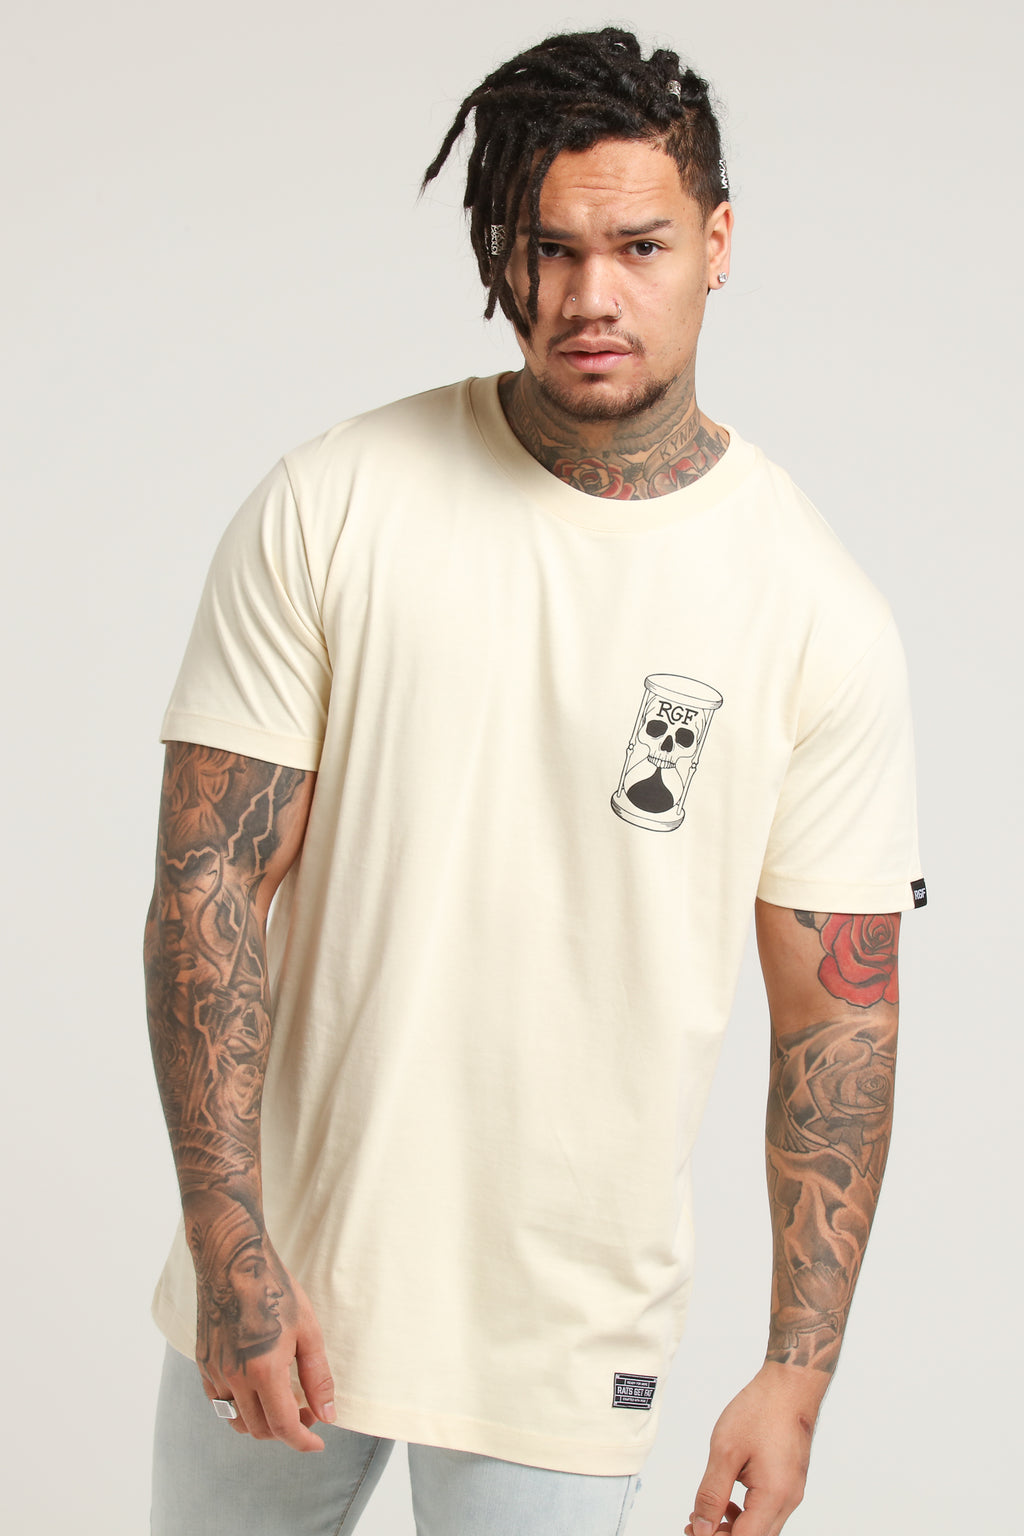 DEAD TIME SS TEE - Cream